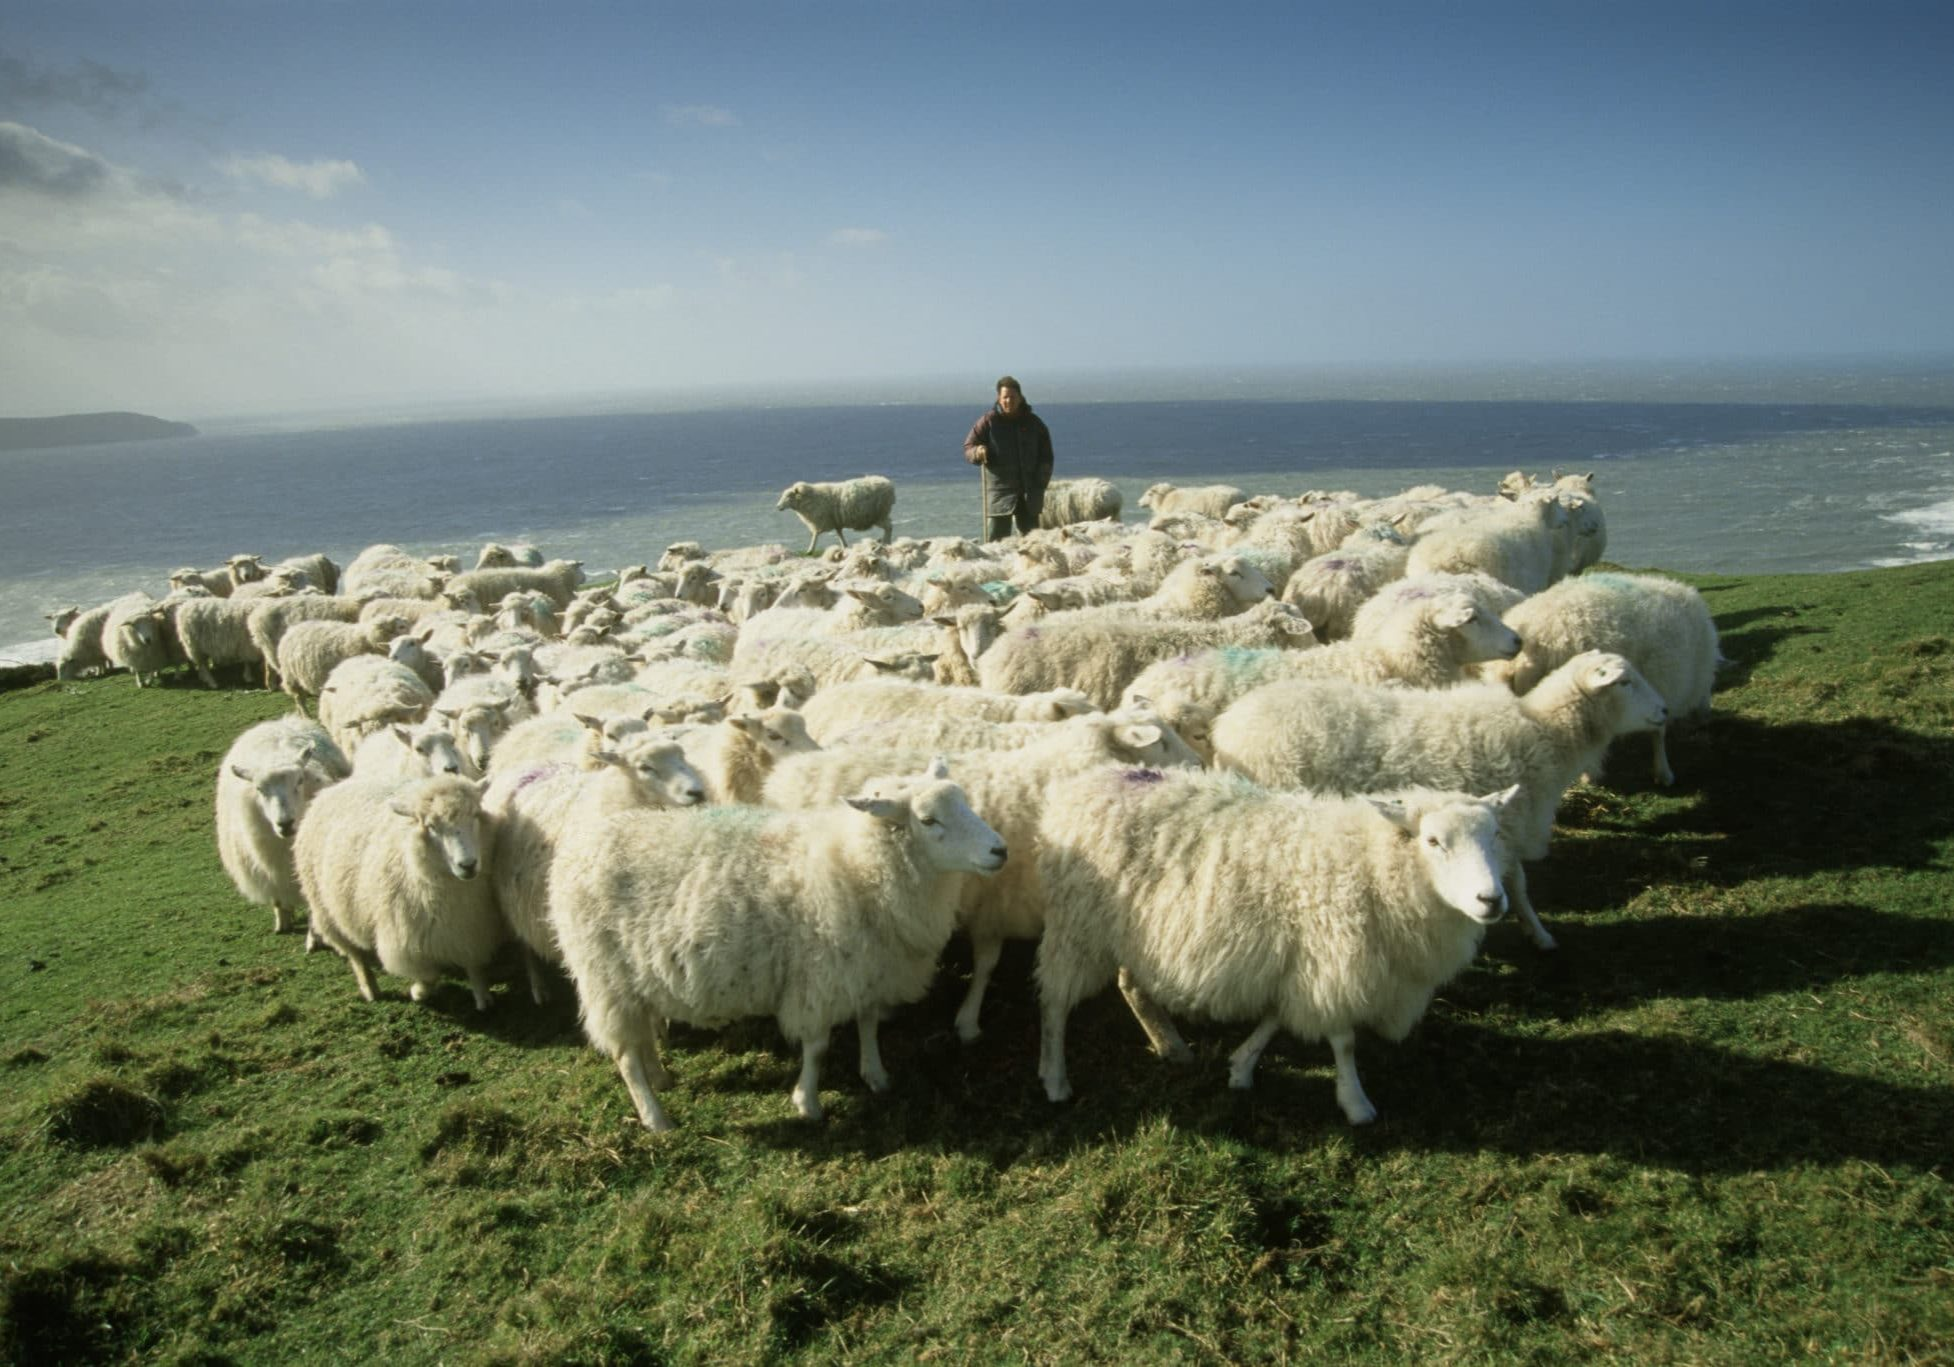 Romney sheep and shepherd on cliff-top at Morte Point, North Devon.